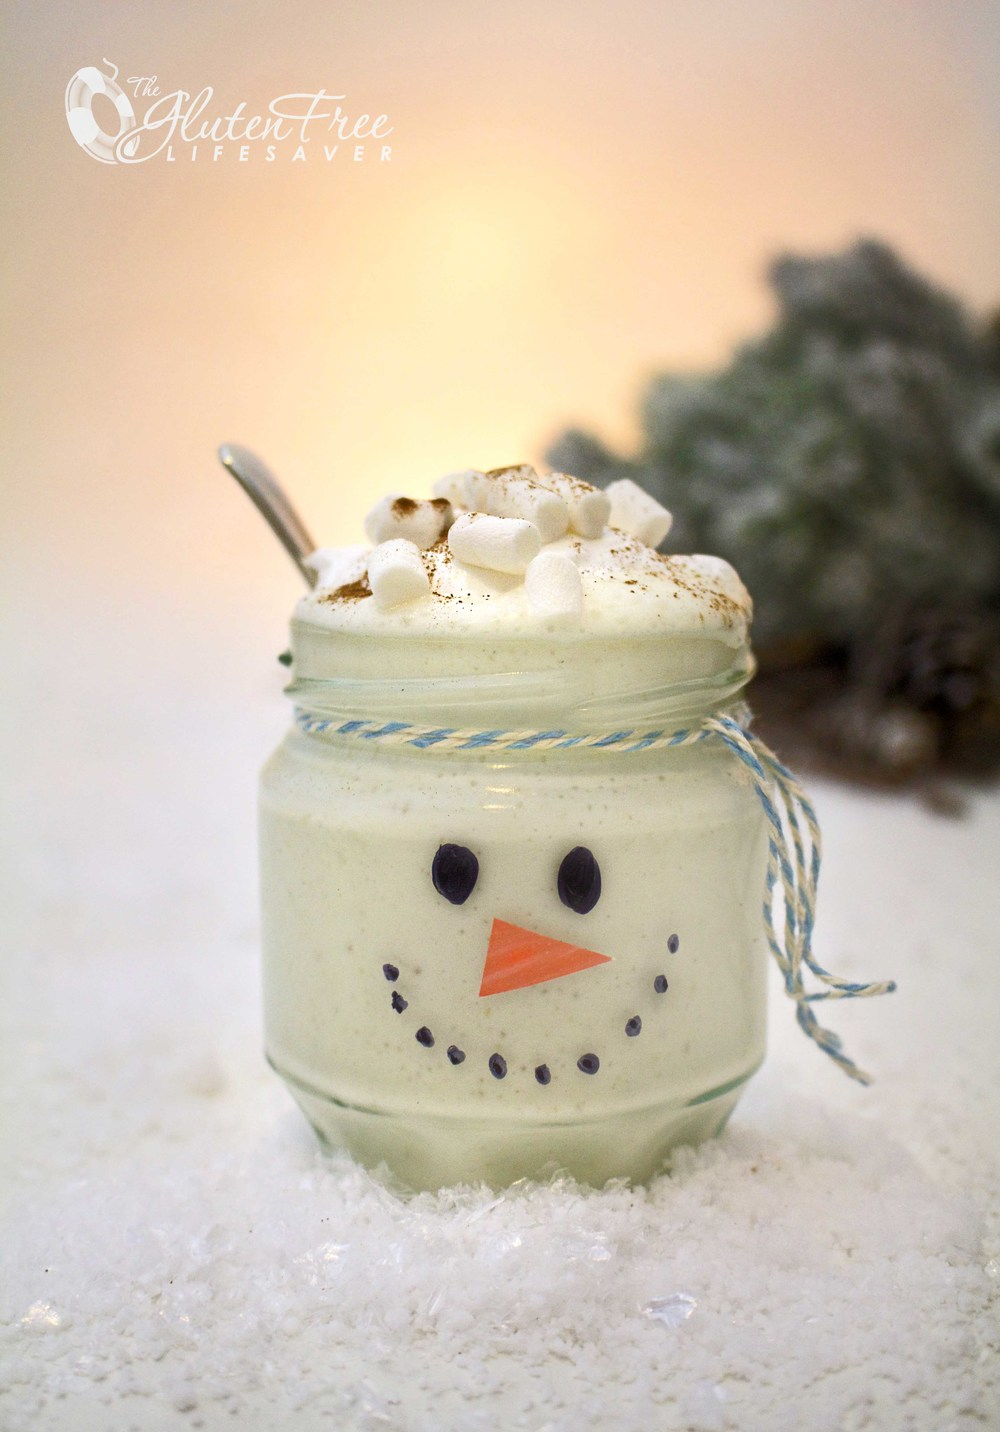 Frosty The Snowman vintersmoothie